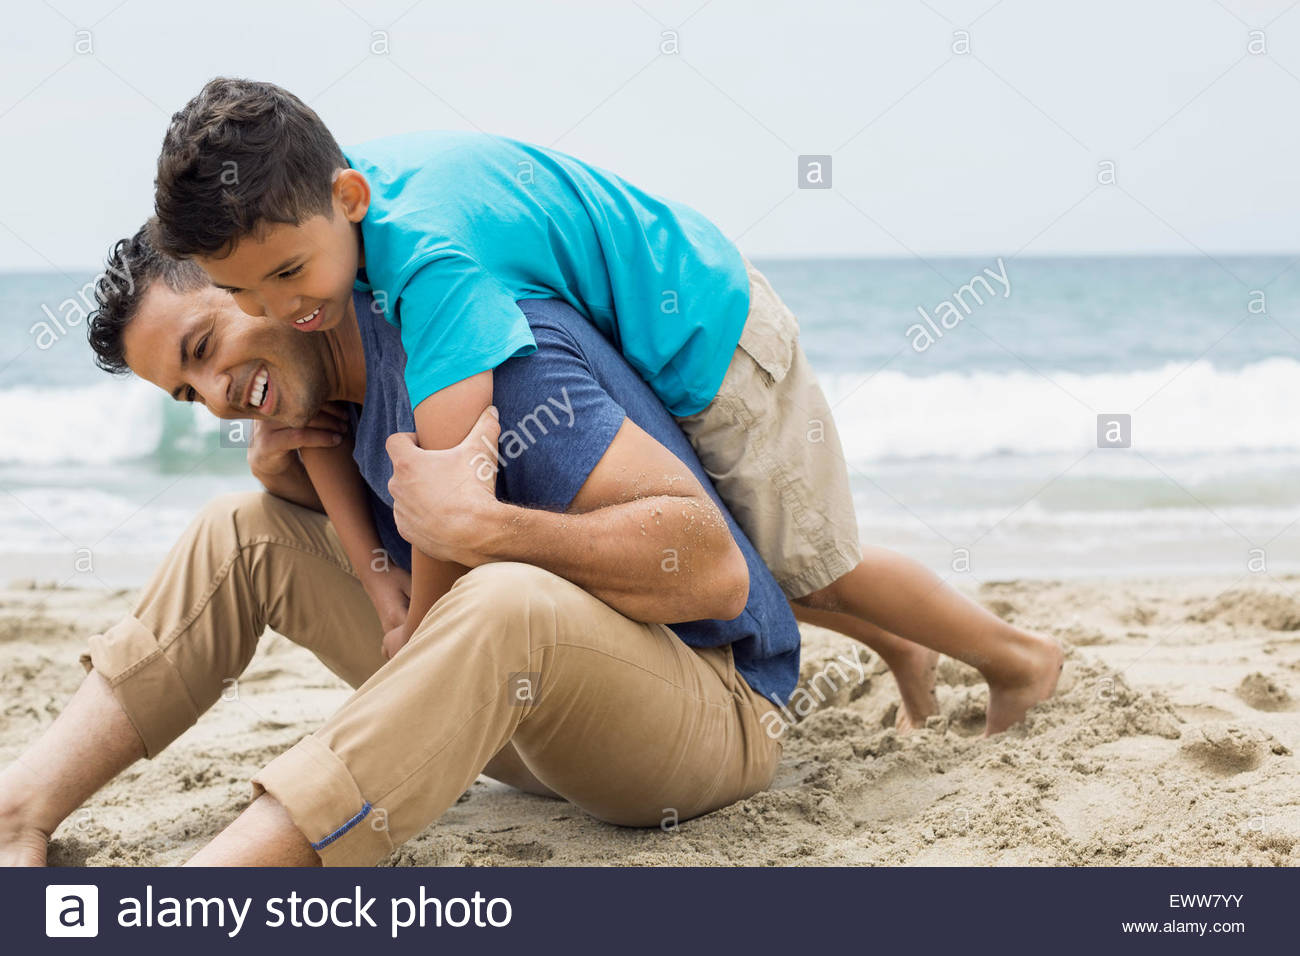 Playful father and son hugging on beach - Stock Image